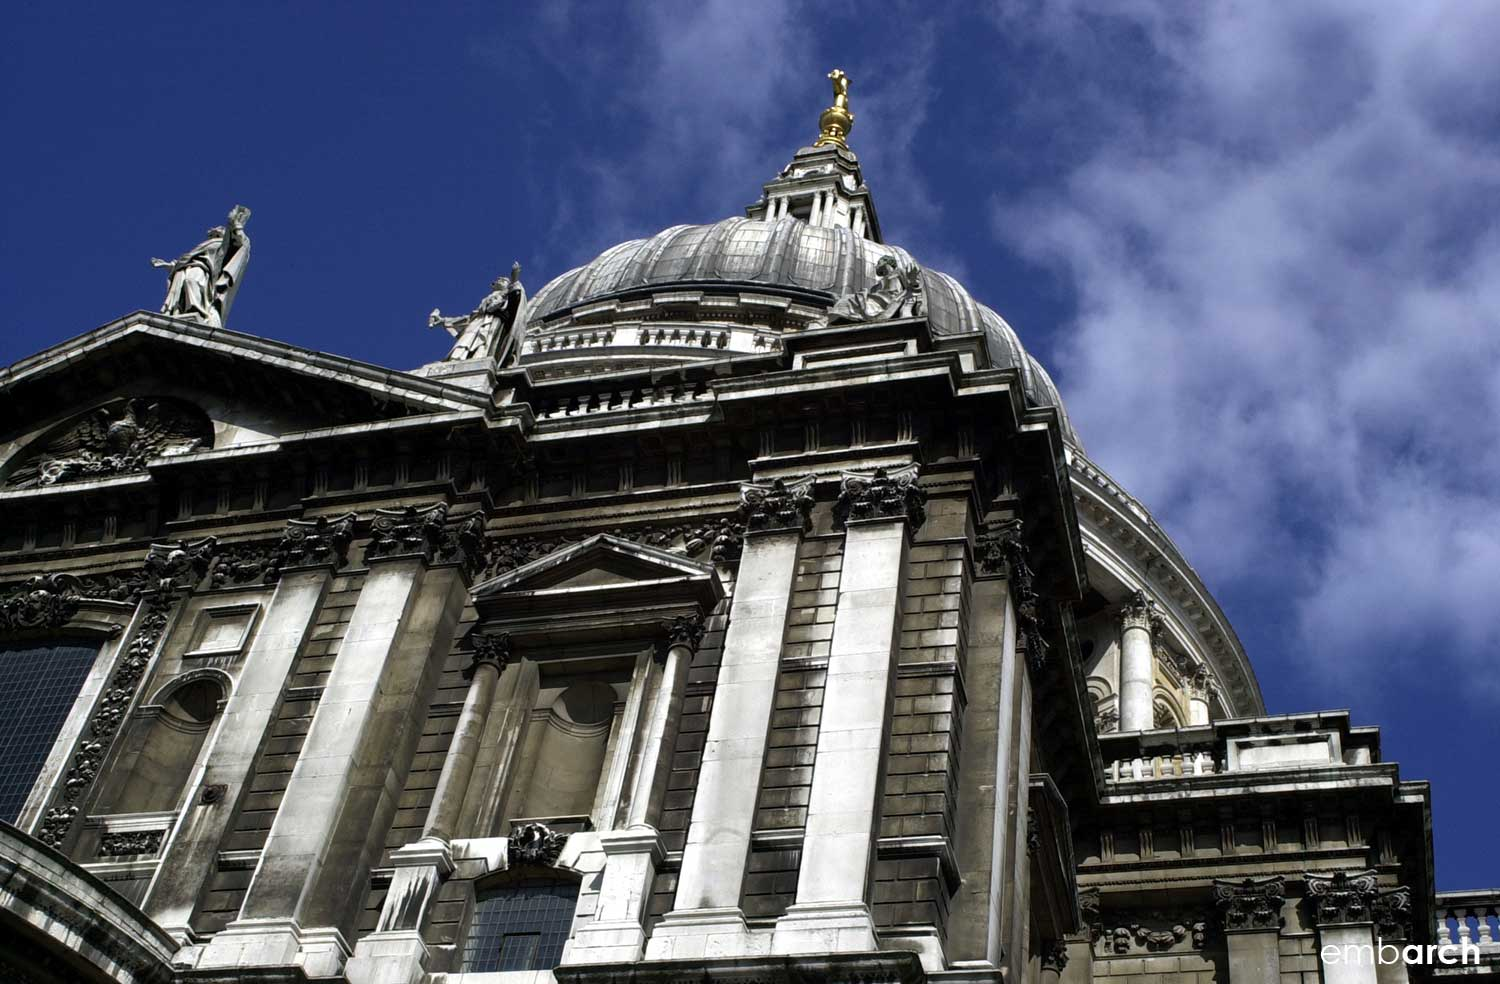 St. Paul's Cathedral - exterior detail